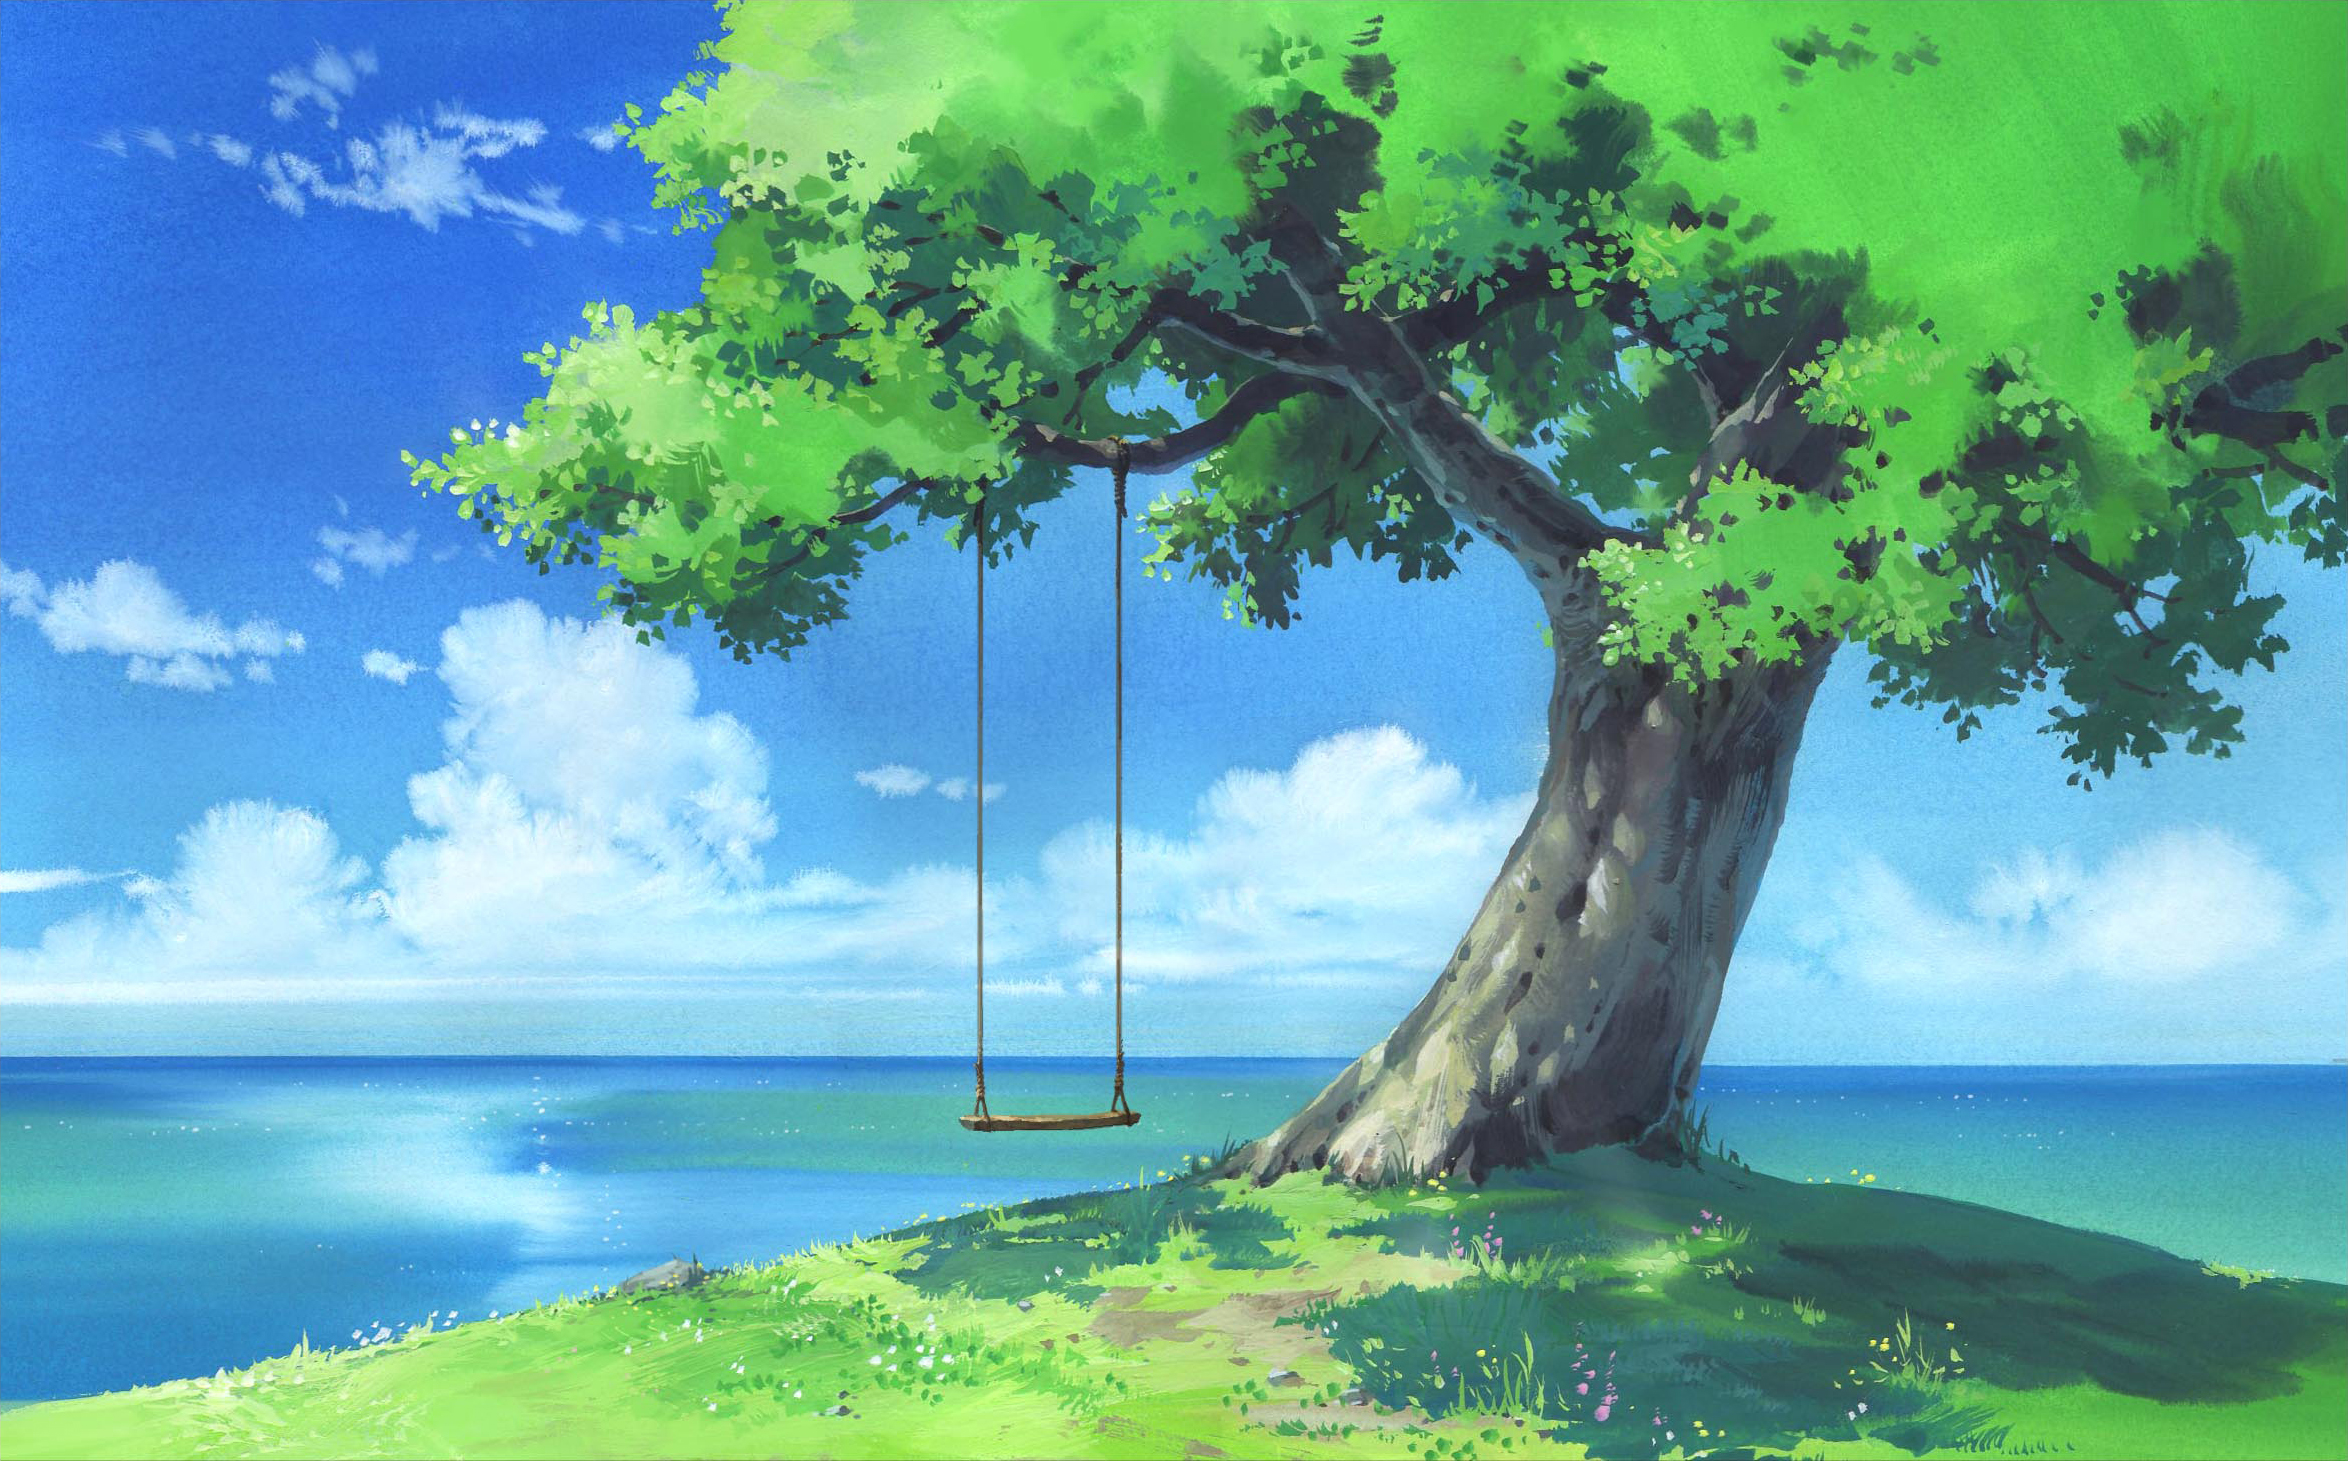 Anime Original Scenery Wallpaper